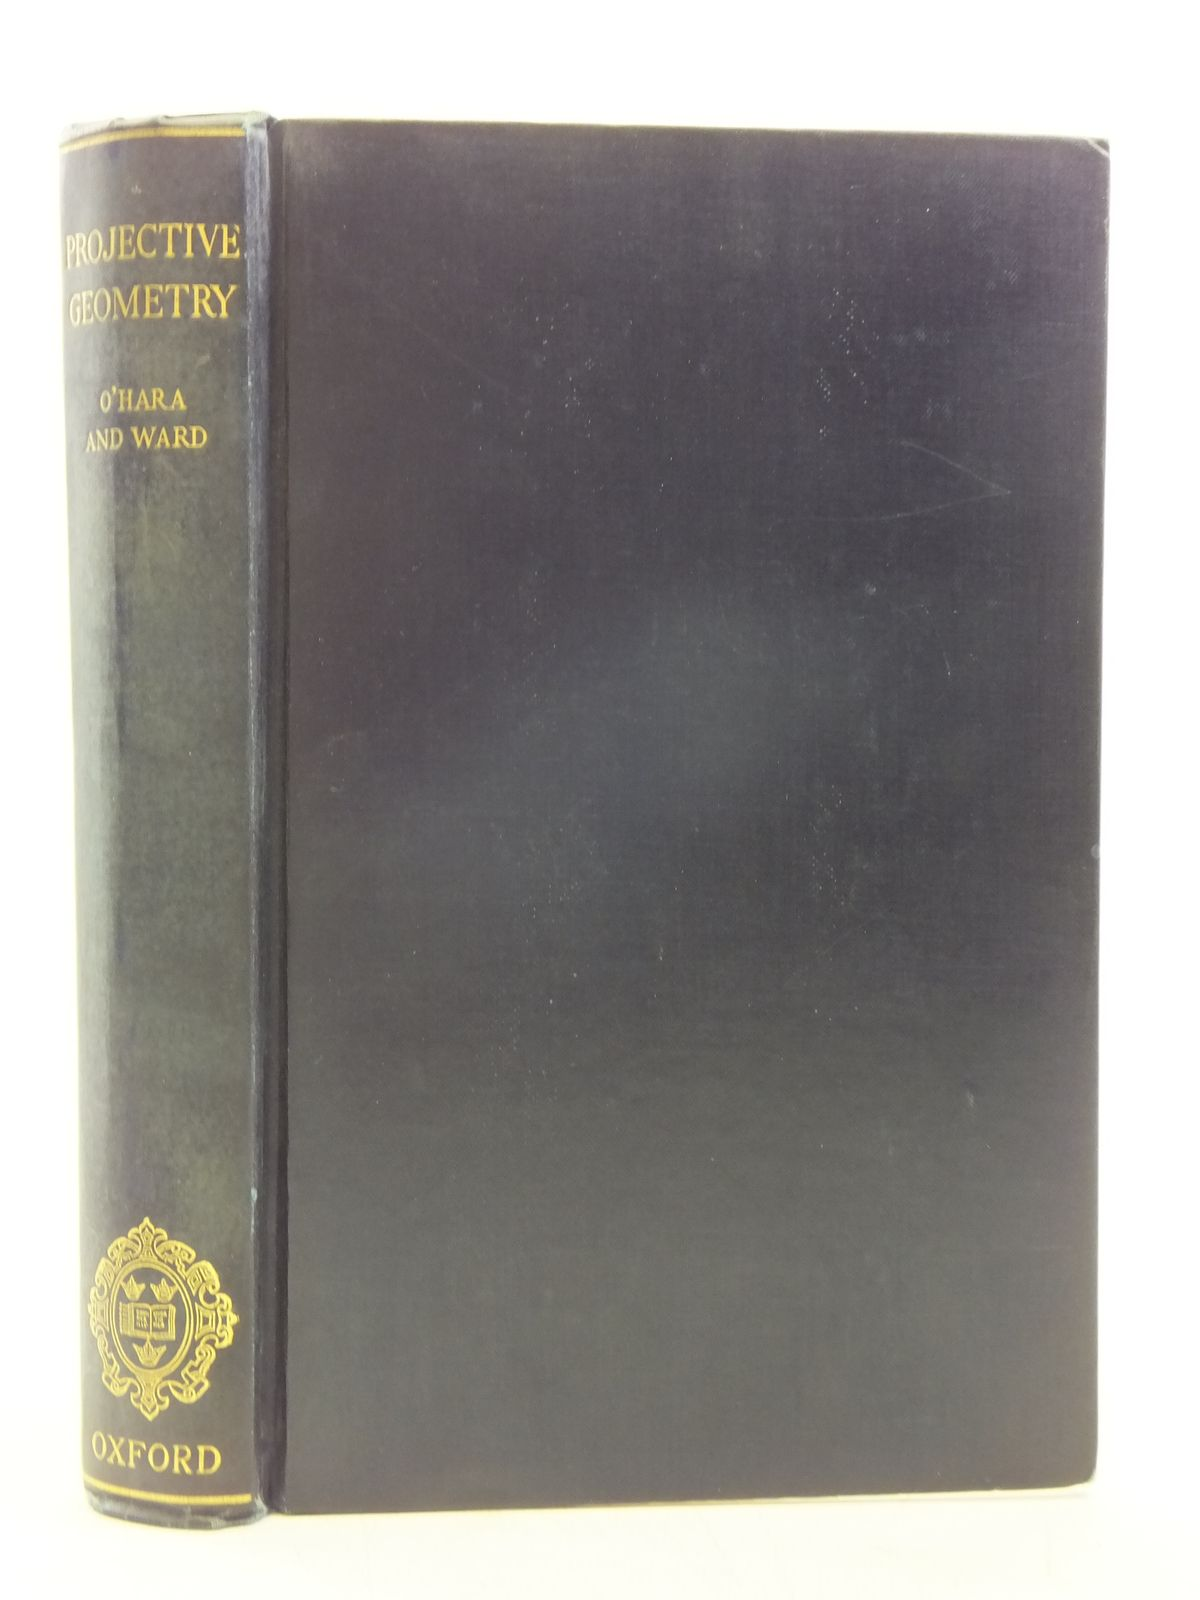 Photo of AN INTRODUCTION TO PROJECTIVE GEOMETRY written by O'Hara, C.W.<br />Ward, D.R. published by Oxford at the Clarendon Press (STOCK CODE: 2119586)  for sale by Stella & Rose's Books